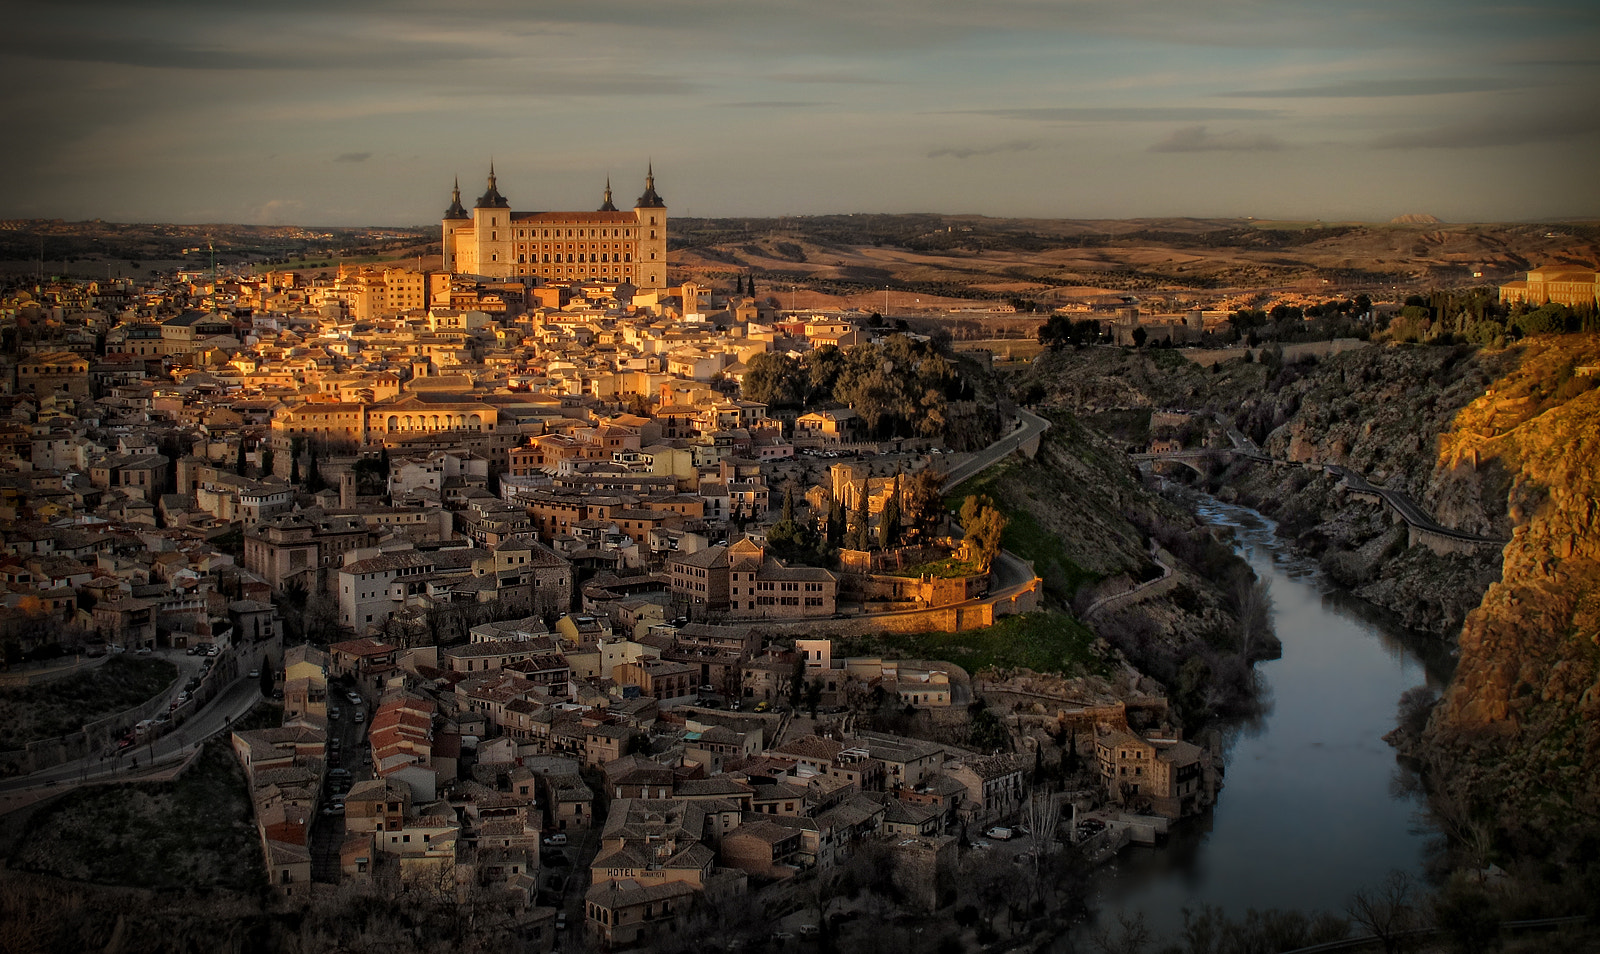 Photograph Toledo by Amador  on 500px